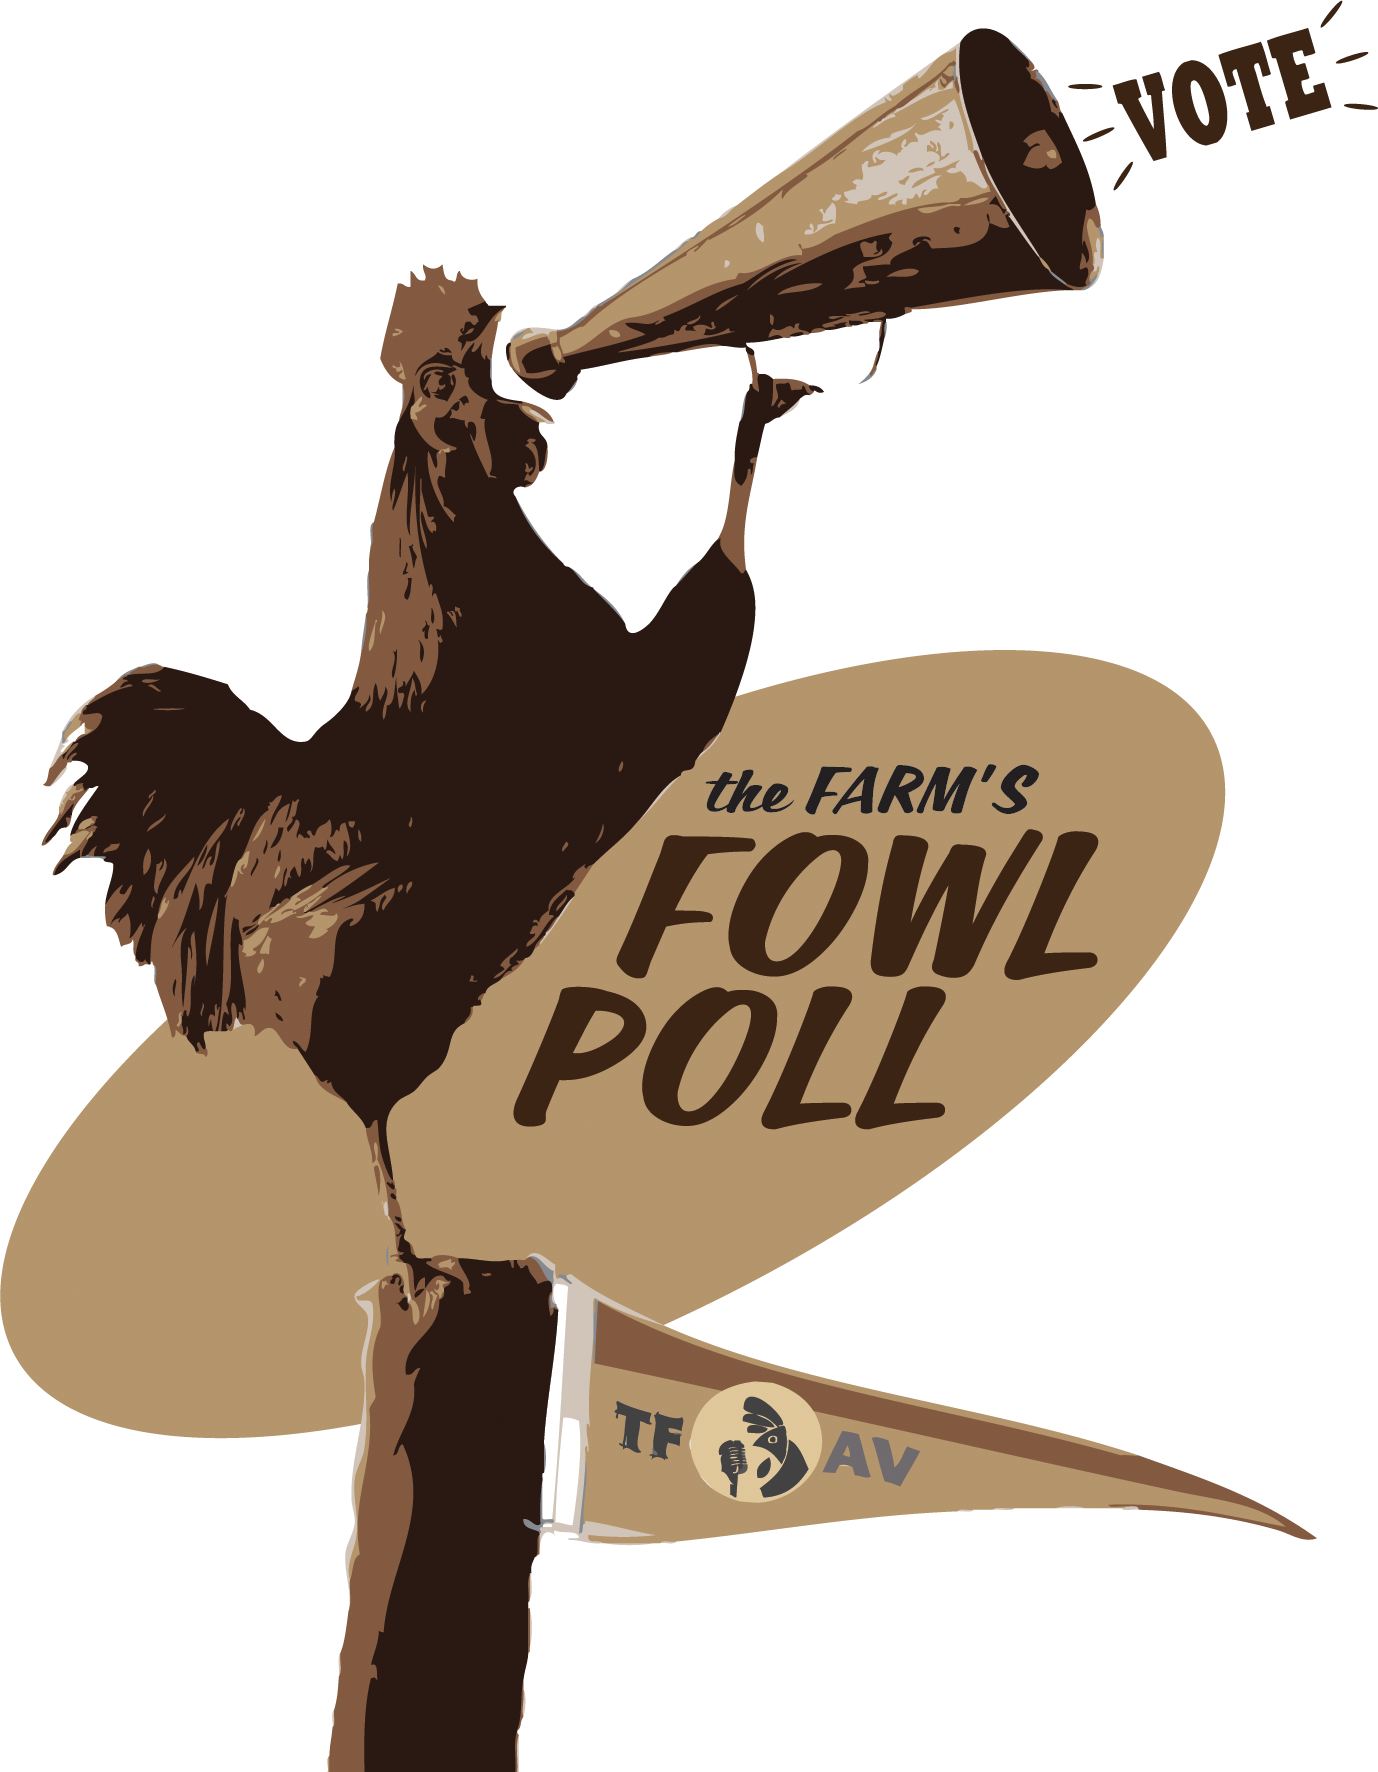 https://campaign-image.com/zohocampaigns/78131000008749004_zc_v41_fowl_poll.png